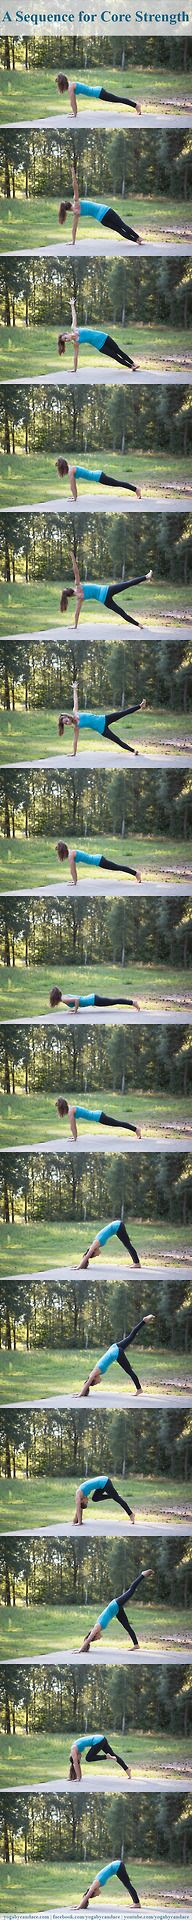 Yoga Sequence for Core Strength